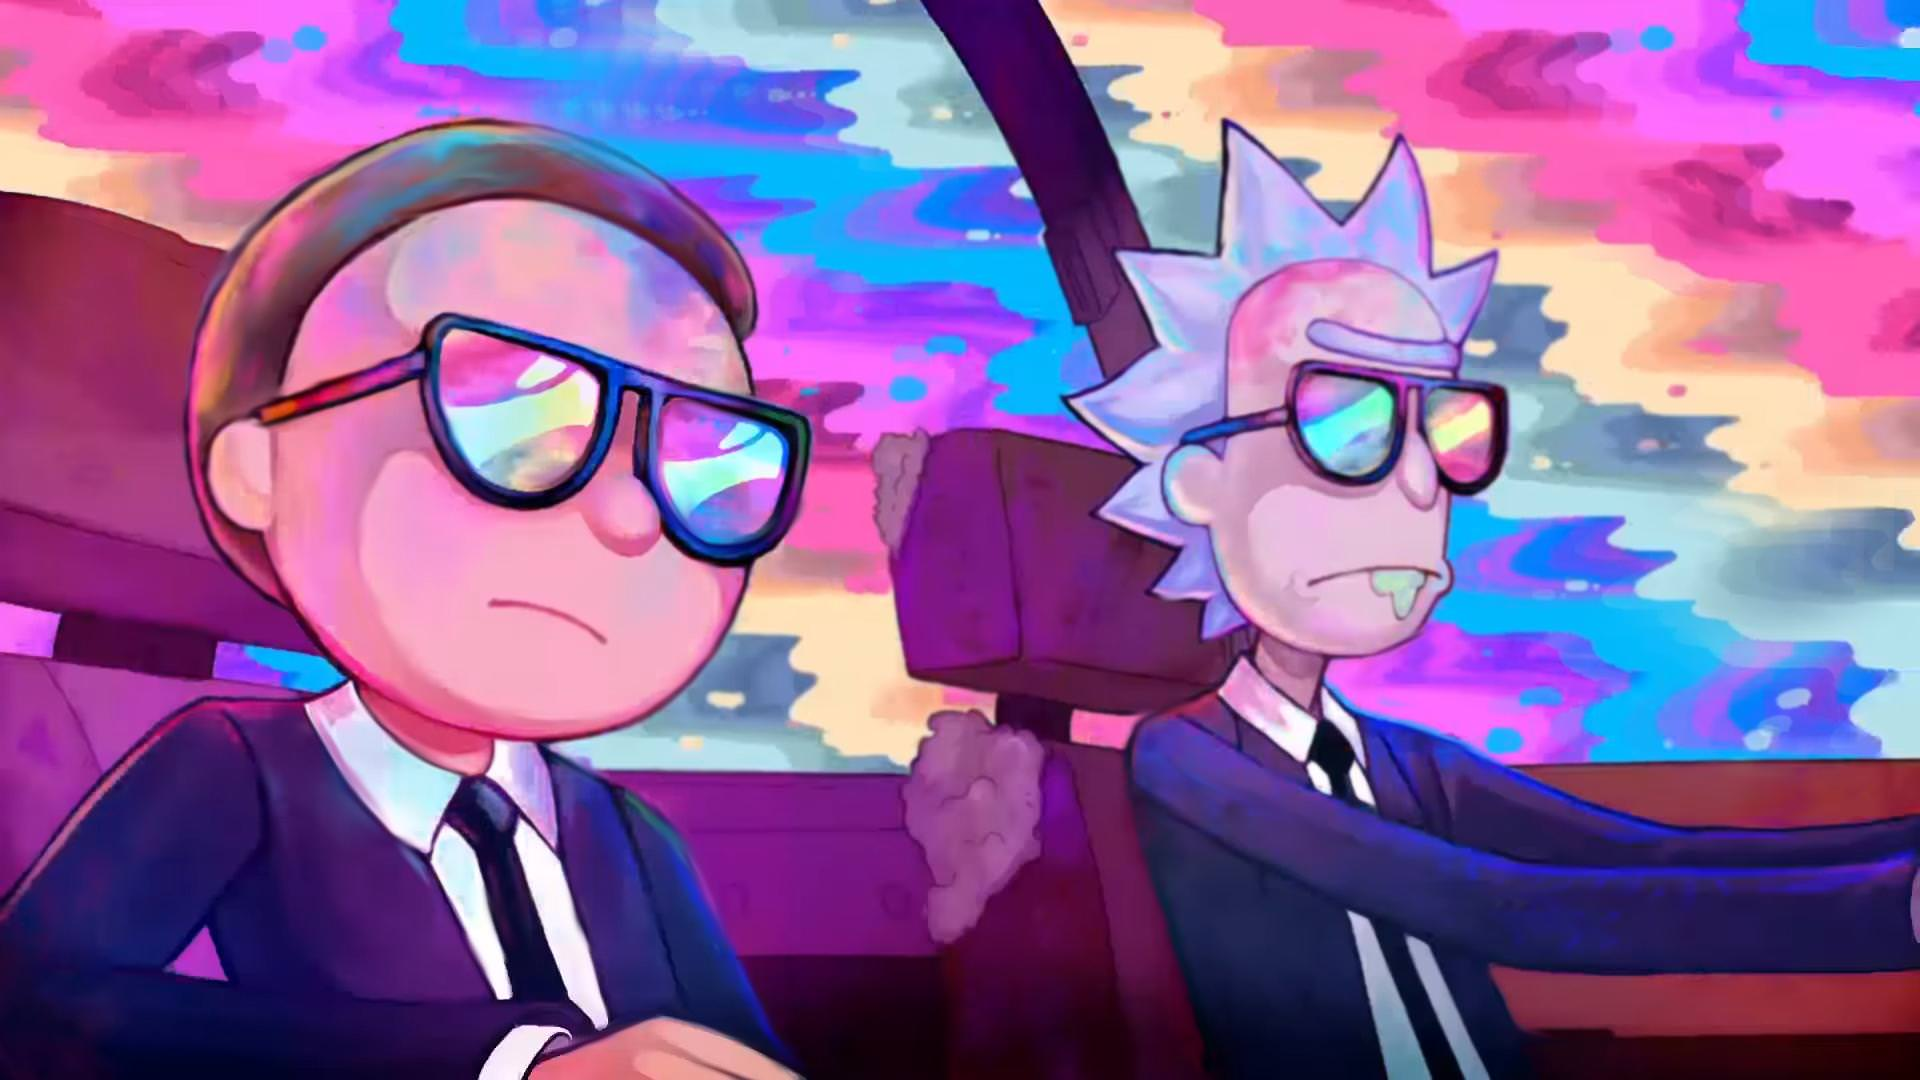 Rick And Morty 4k Wallpapers   Top Rick And Morty 4k 1920x1080